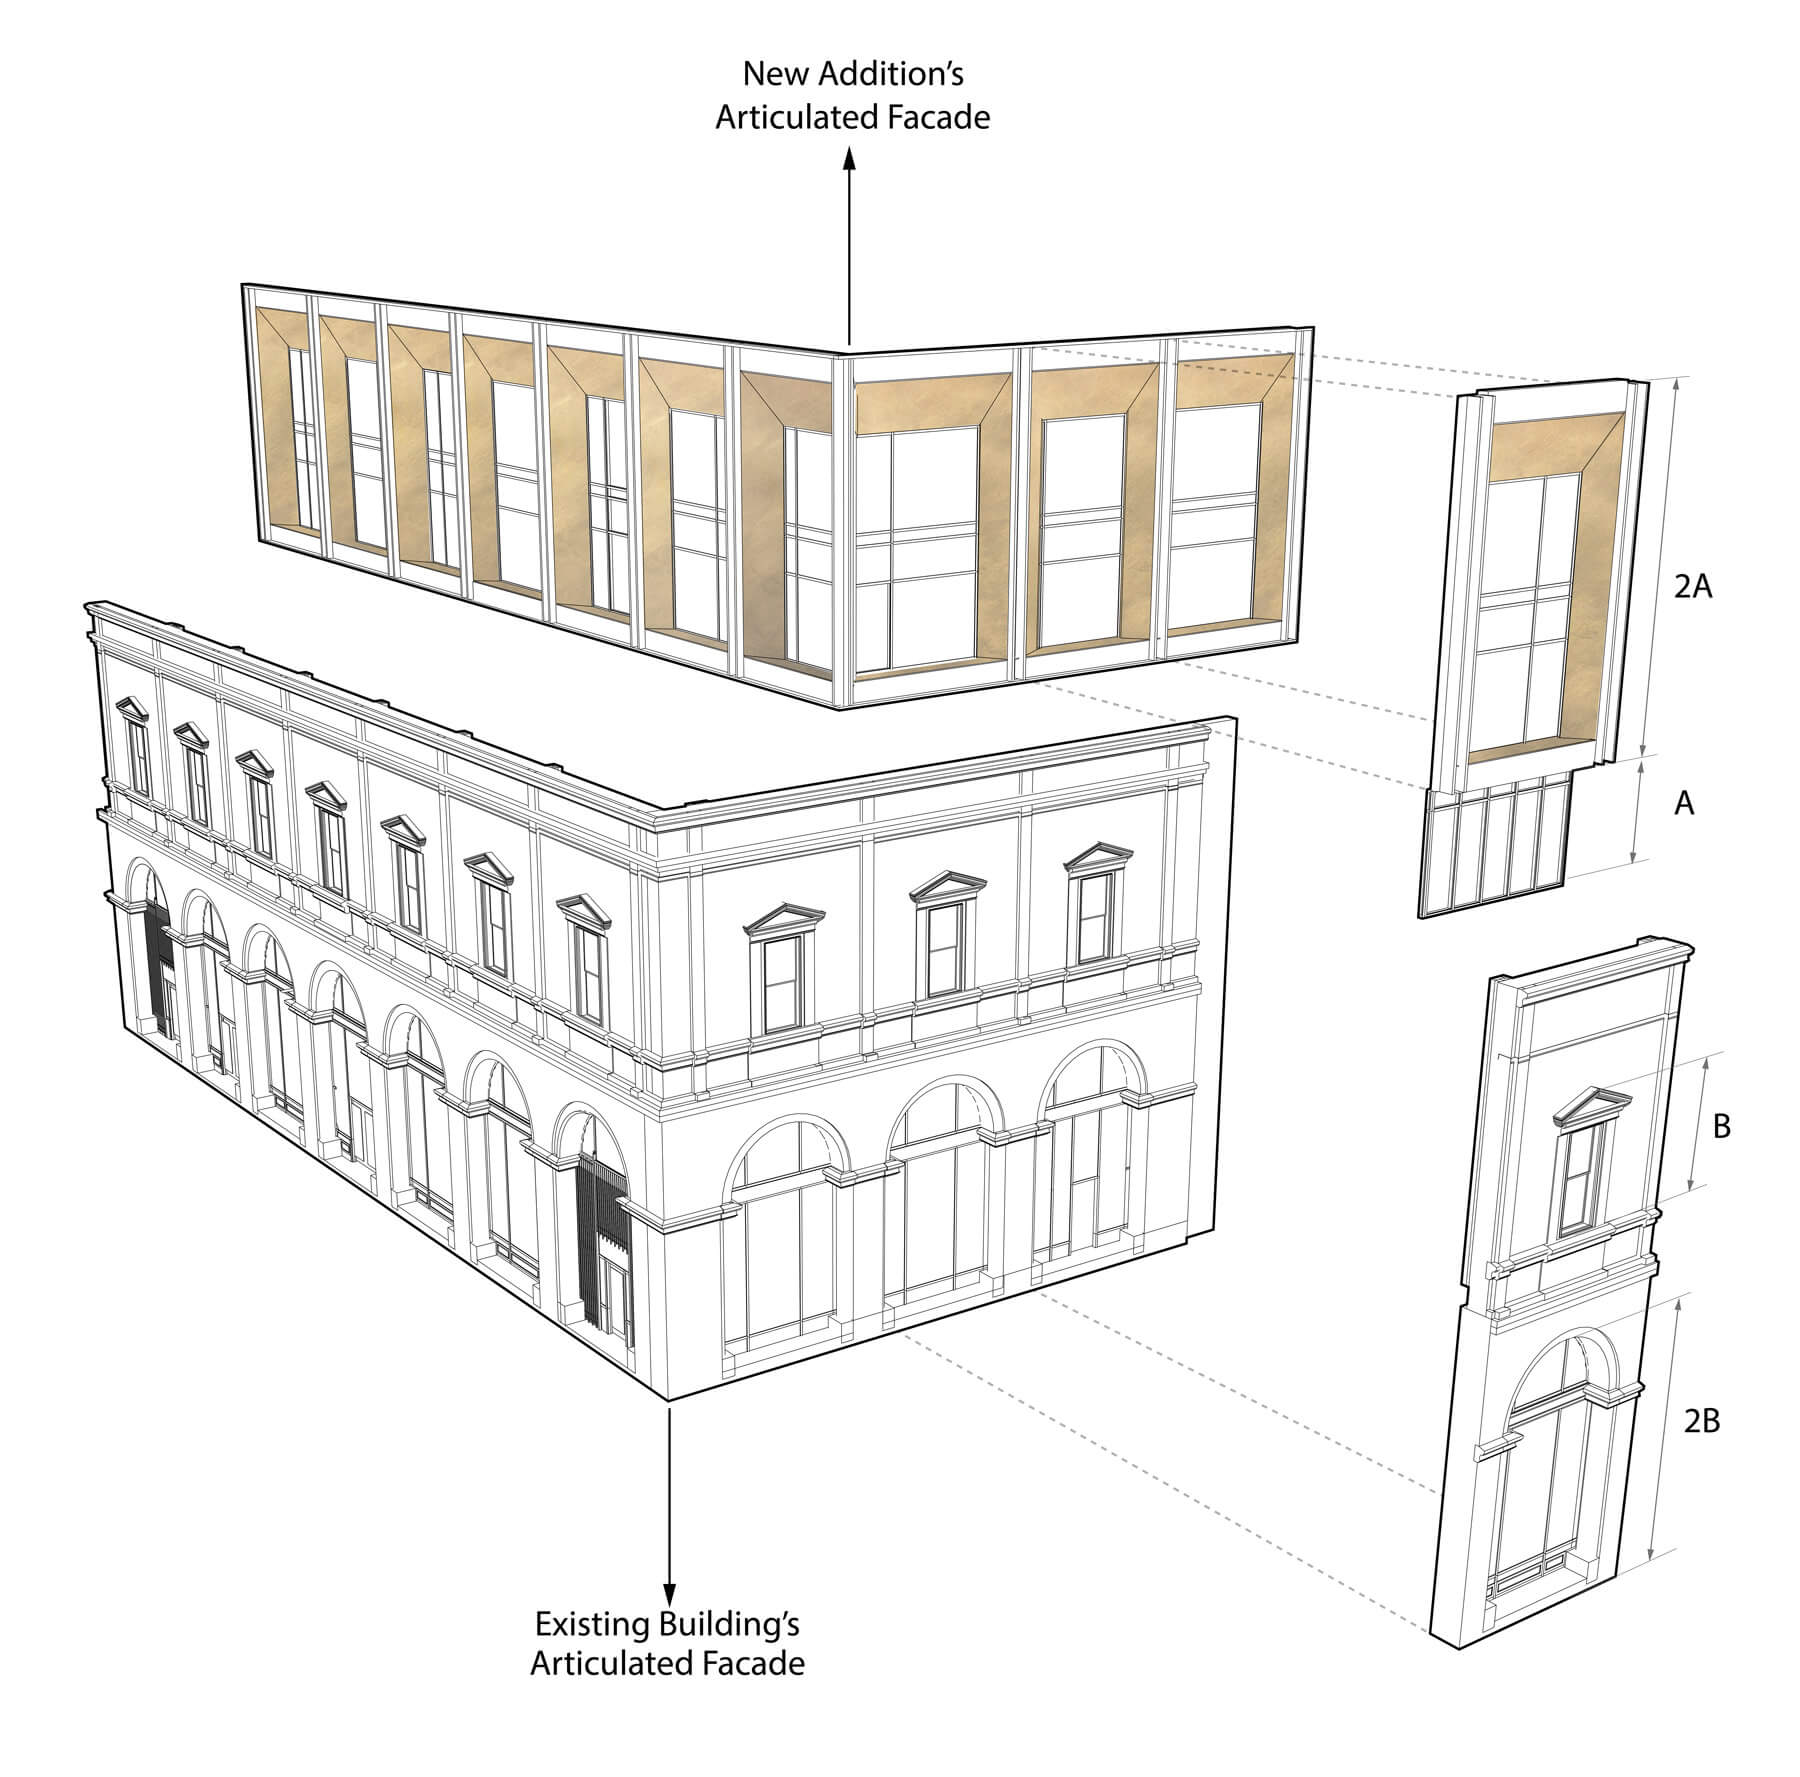 Axonometric drawing of the facade of 727 Mass. Ave. in Cambridge, showing facade of new boutique hotel on top of existing historic building